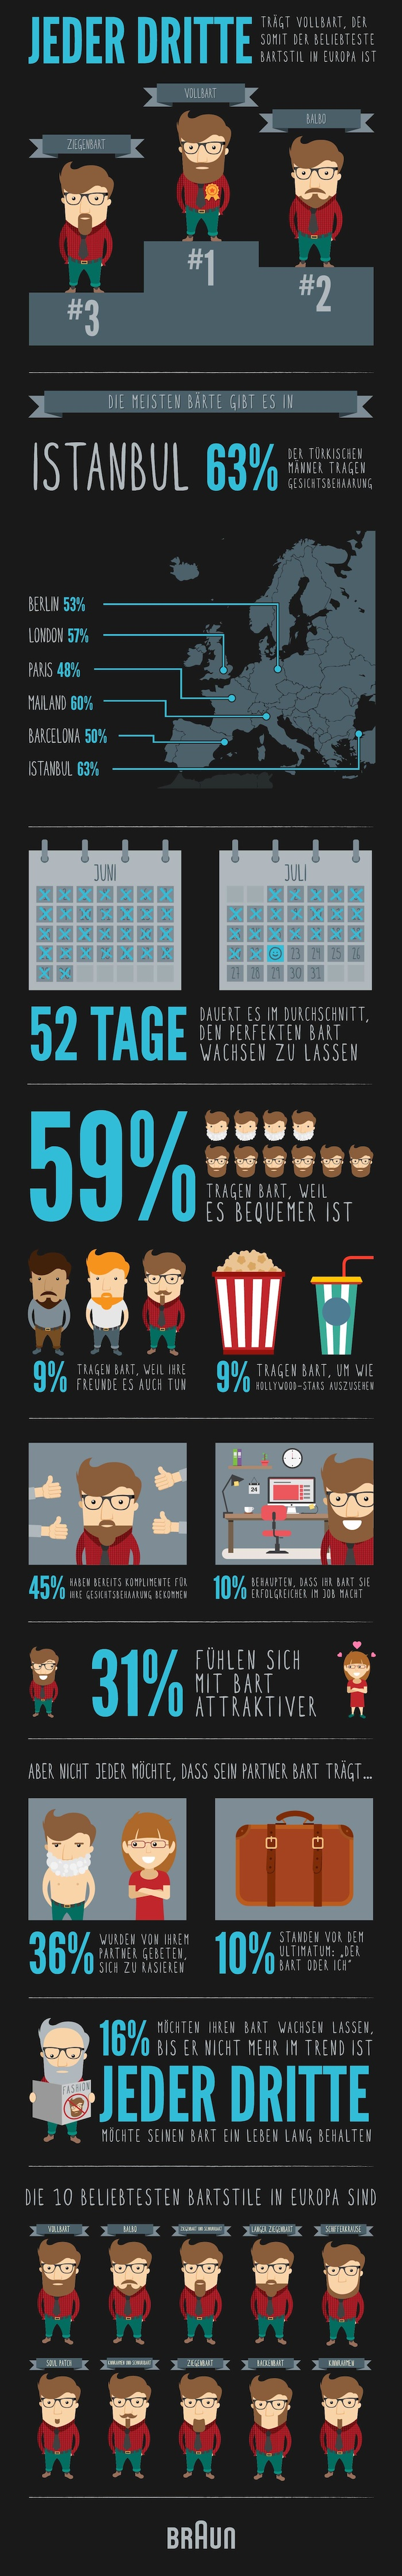 braun_beard_infografik_german_02